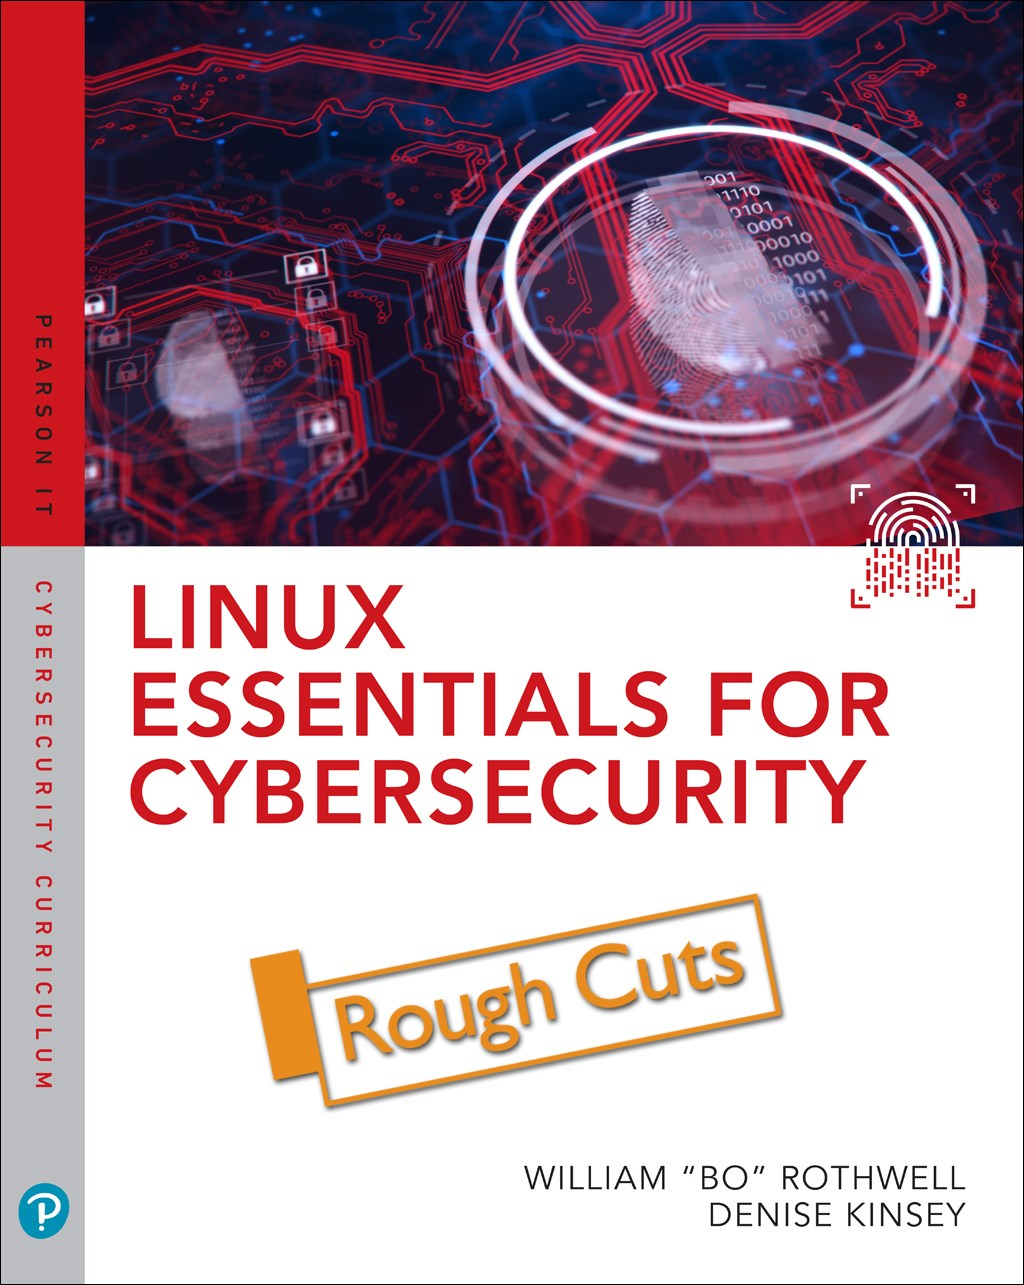 Linux Essentials for Cybersecurity,Rough Cuts